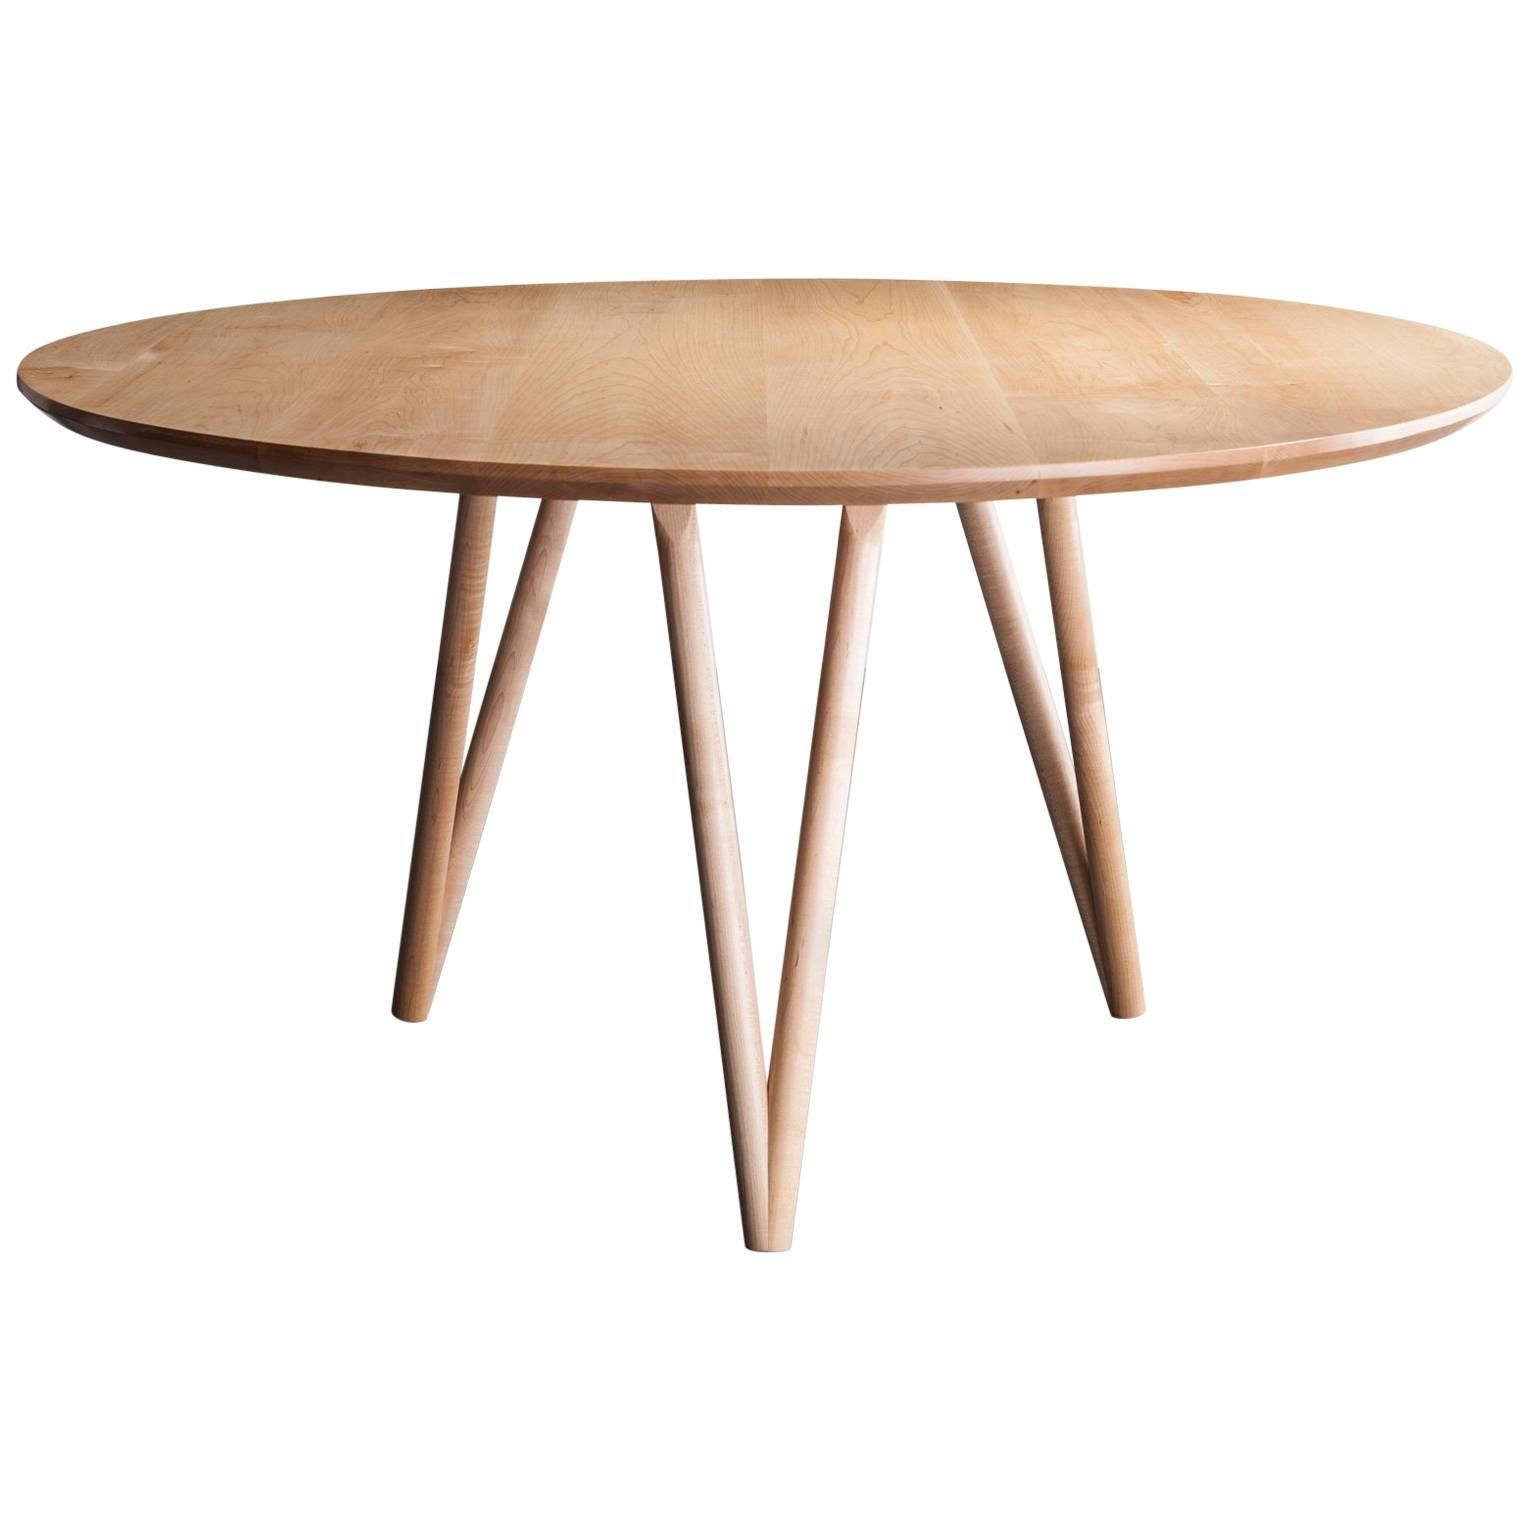 Hairpin Dining Table, Solid Hardwood, Available in Made to Measure. Made in USA